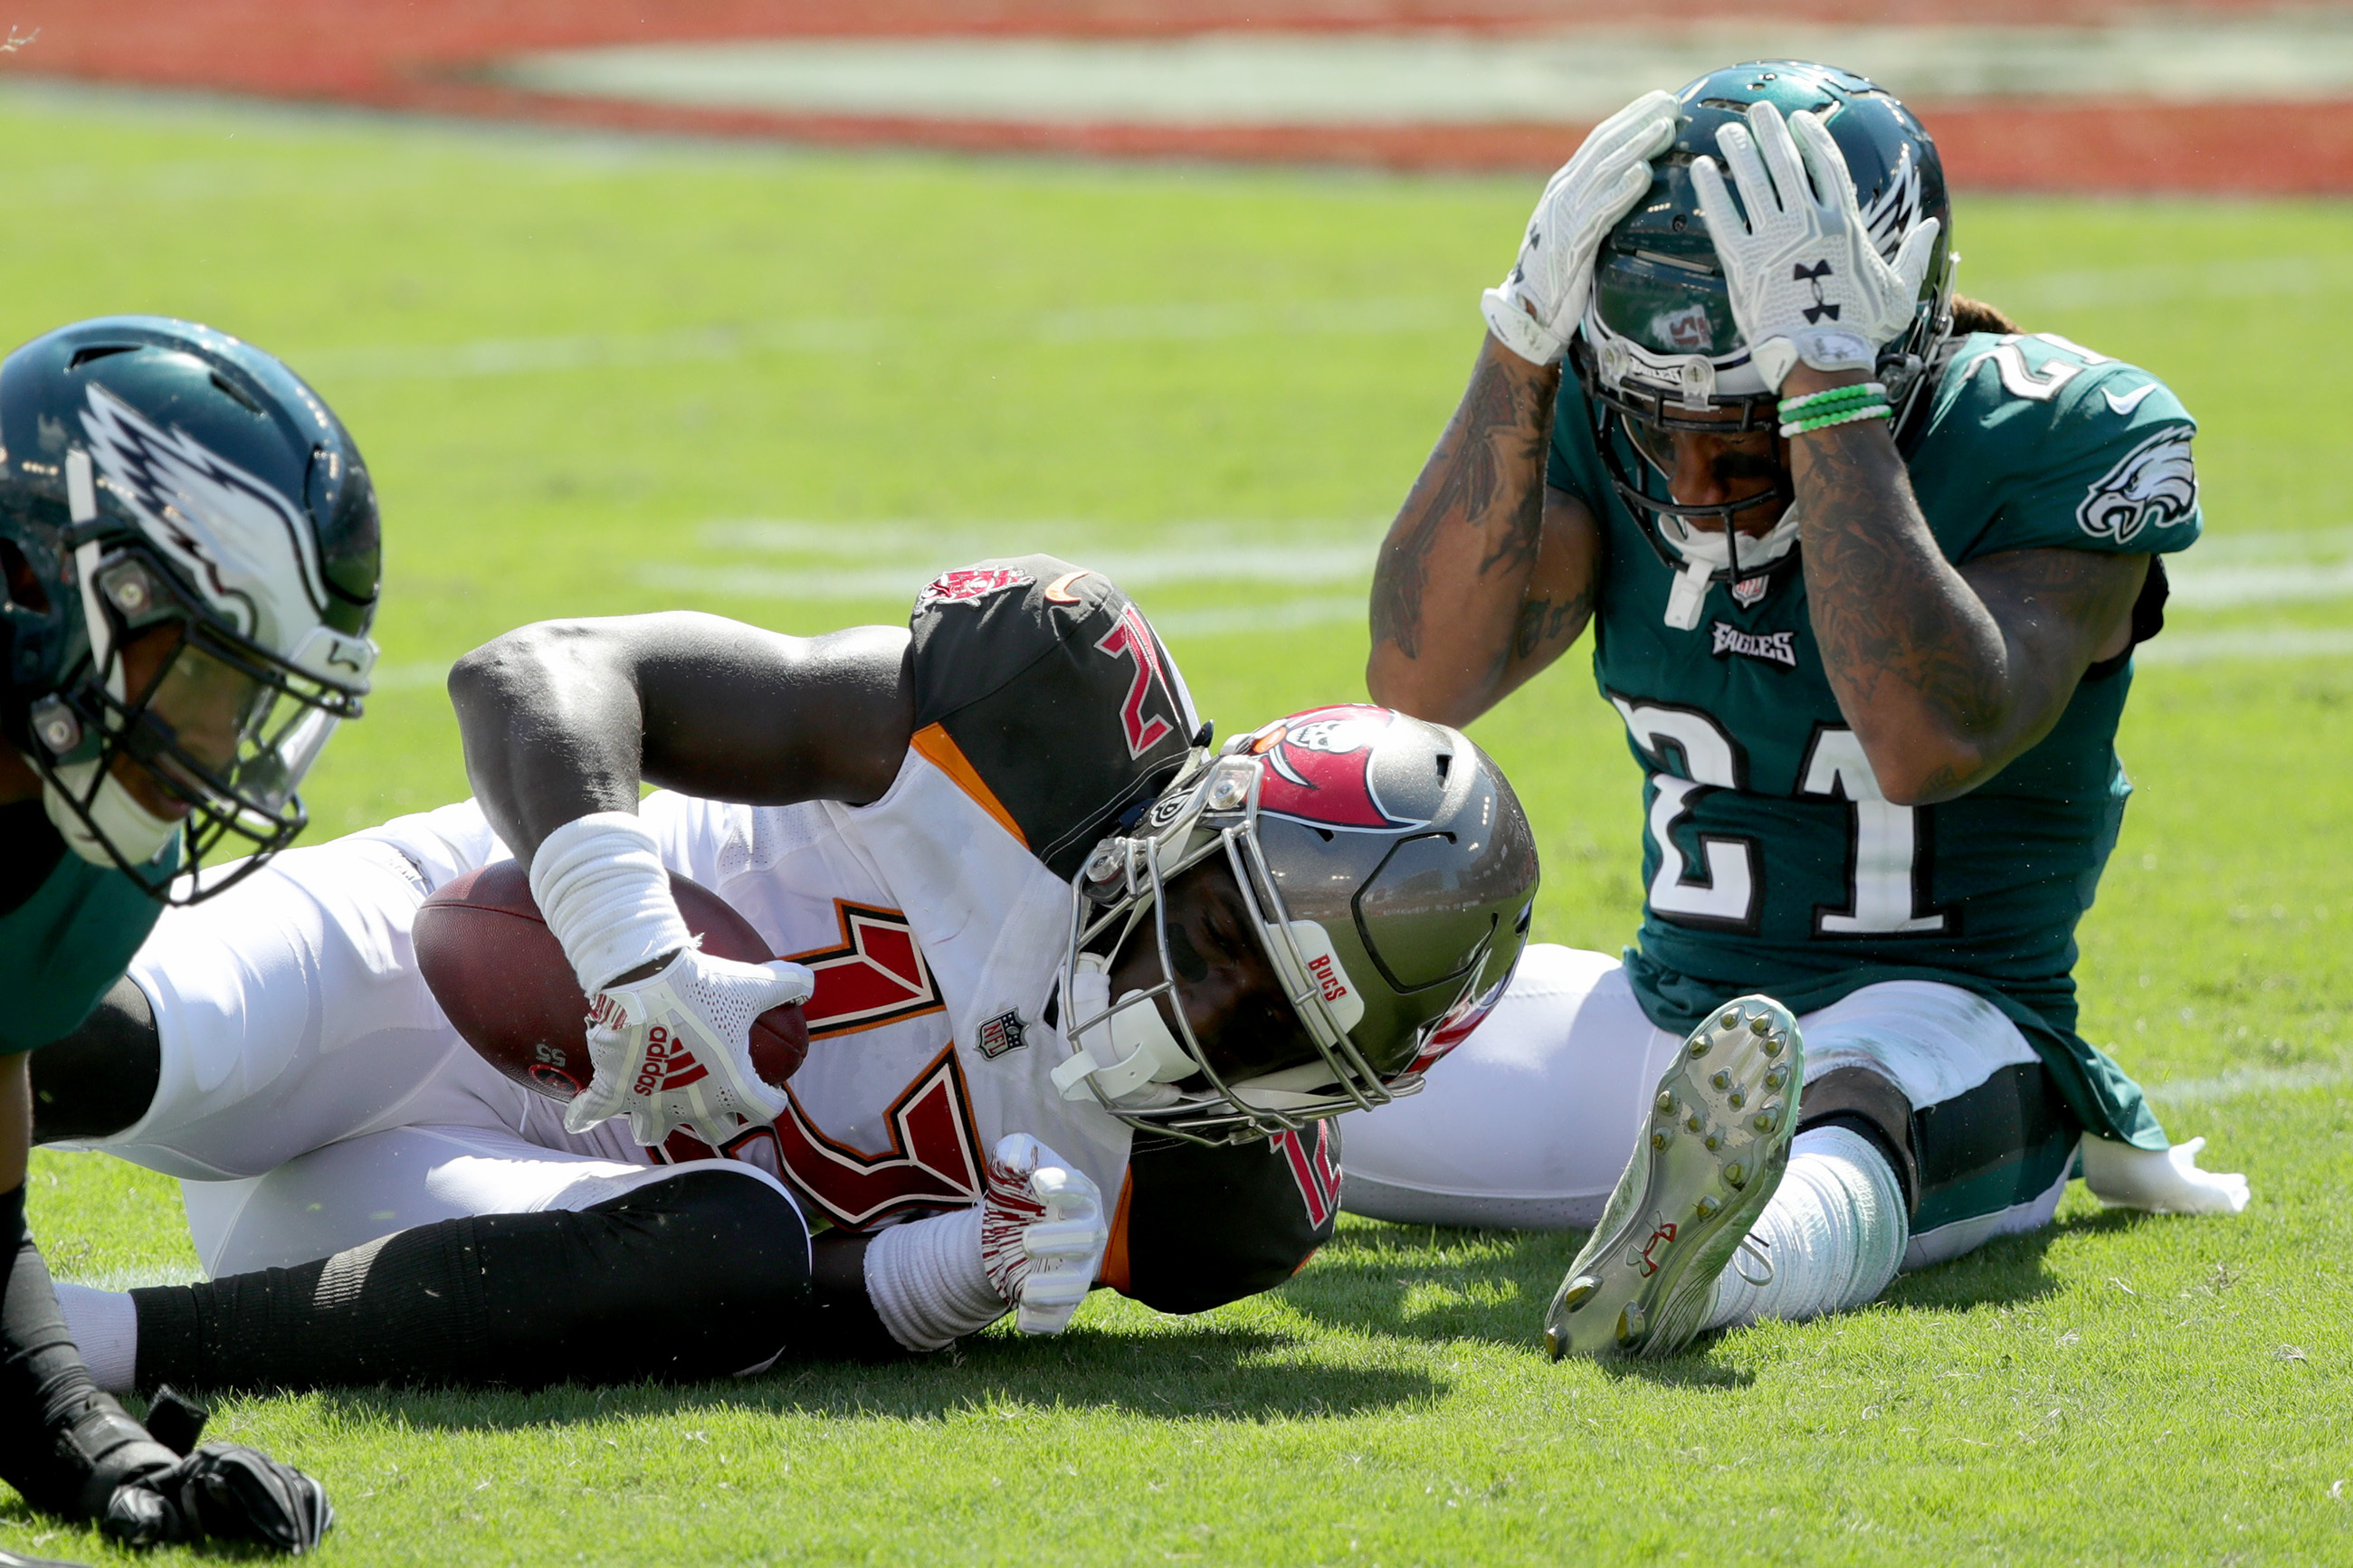 Ronald Darby right, reacts after the Buccaneers' Chris Godwin, center, makes a 1st down catch. Philadelphia Eagles lose 27-21 to the Tampa Bay Buccaneers in Tampa, Fl on September 16, 2018.